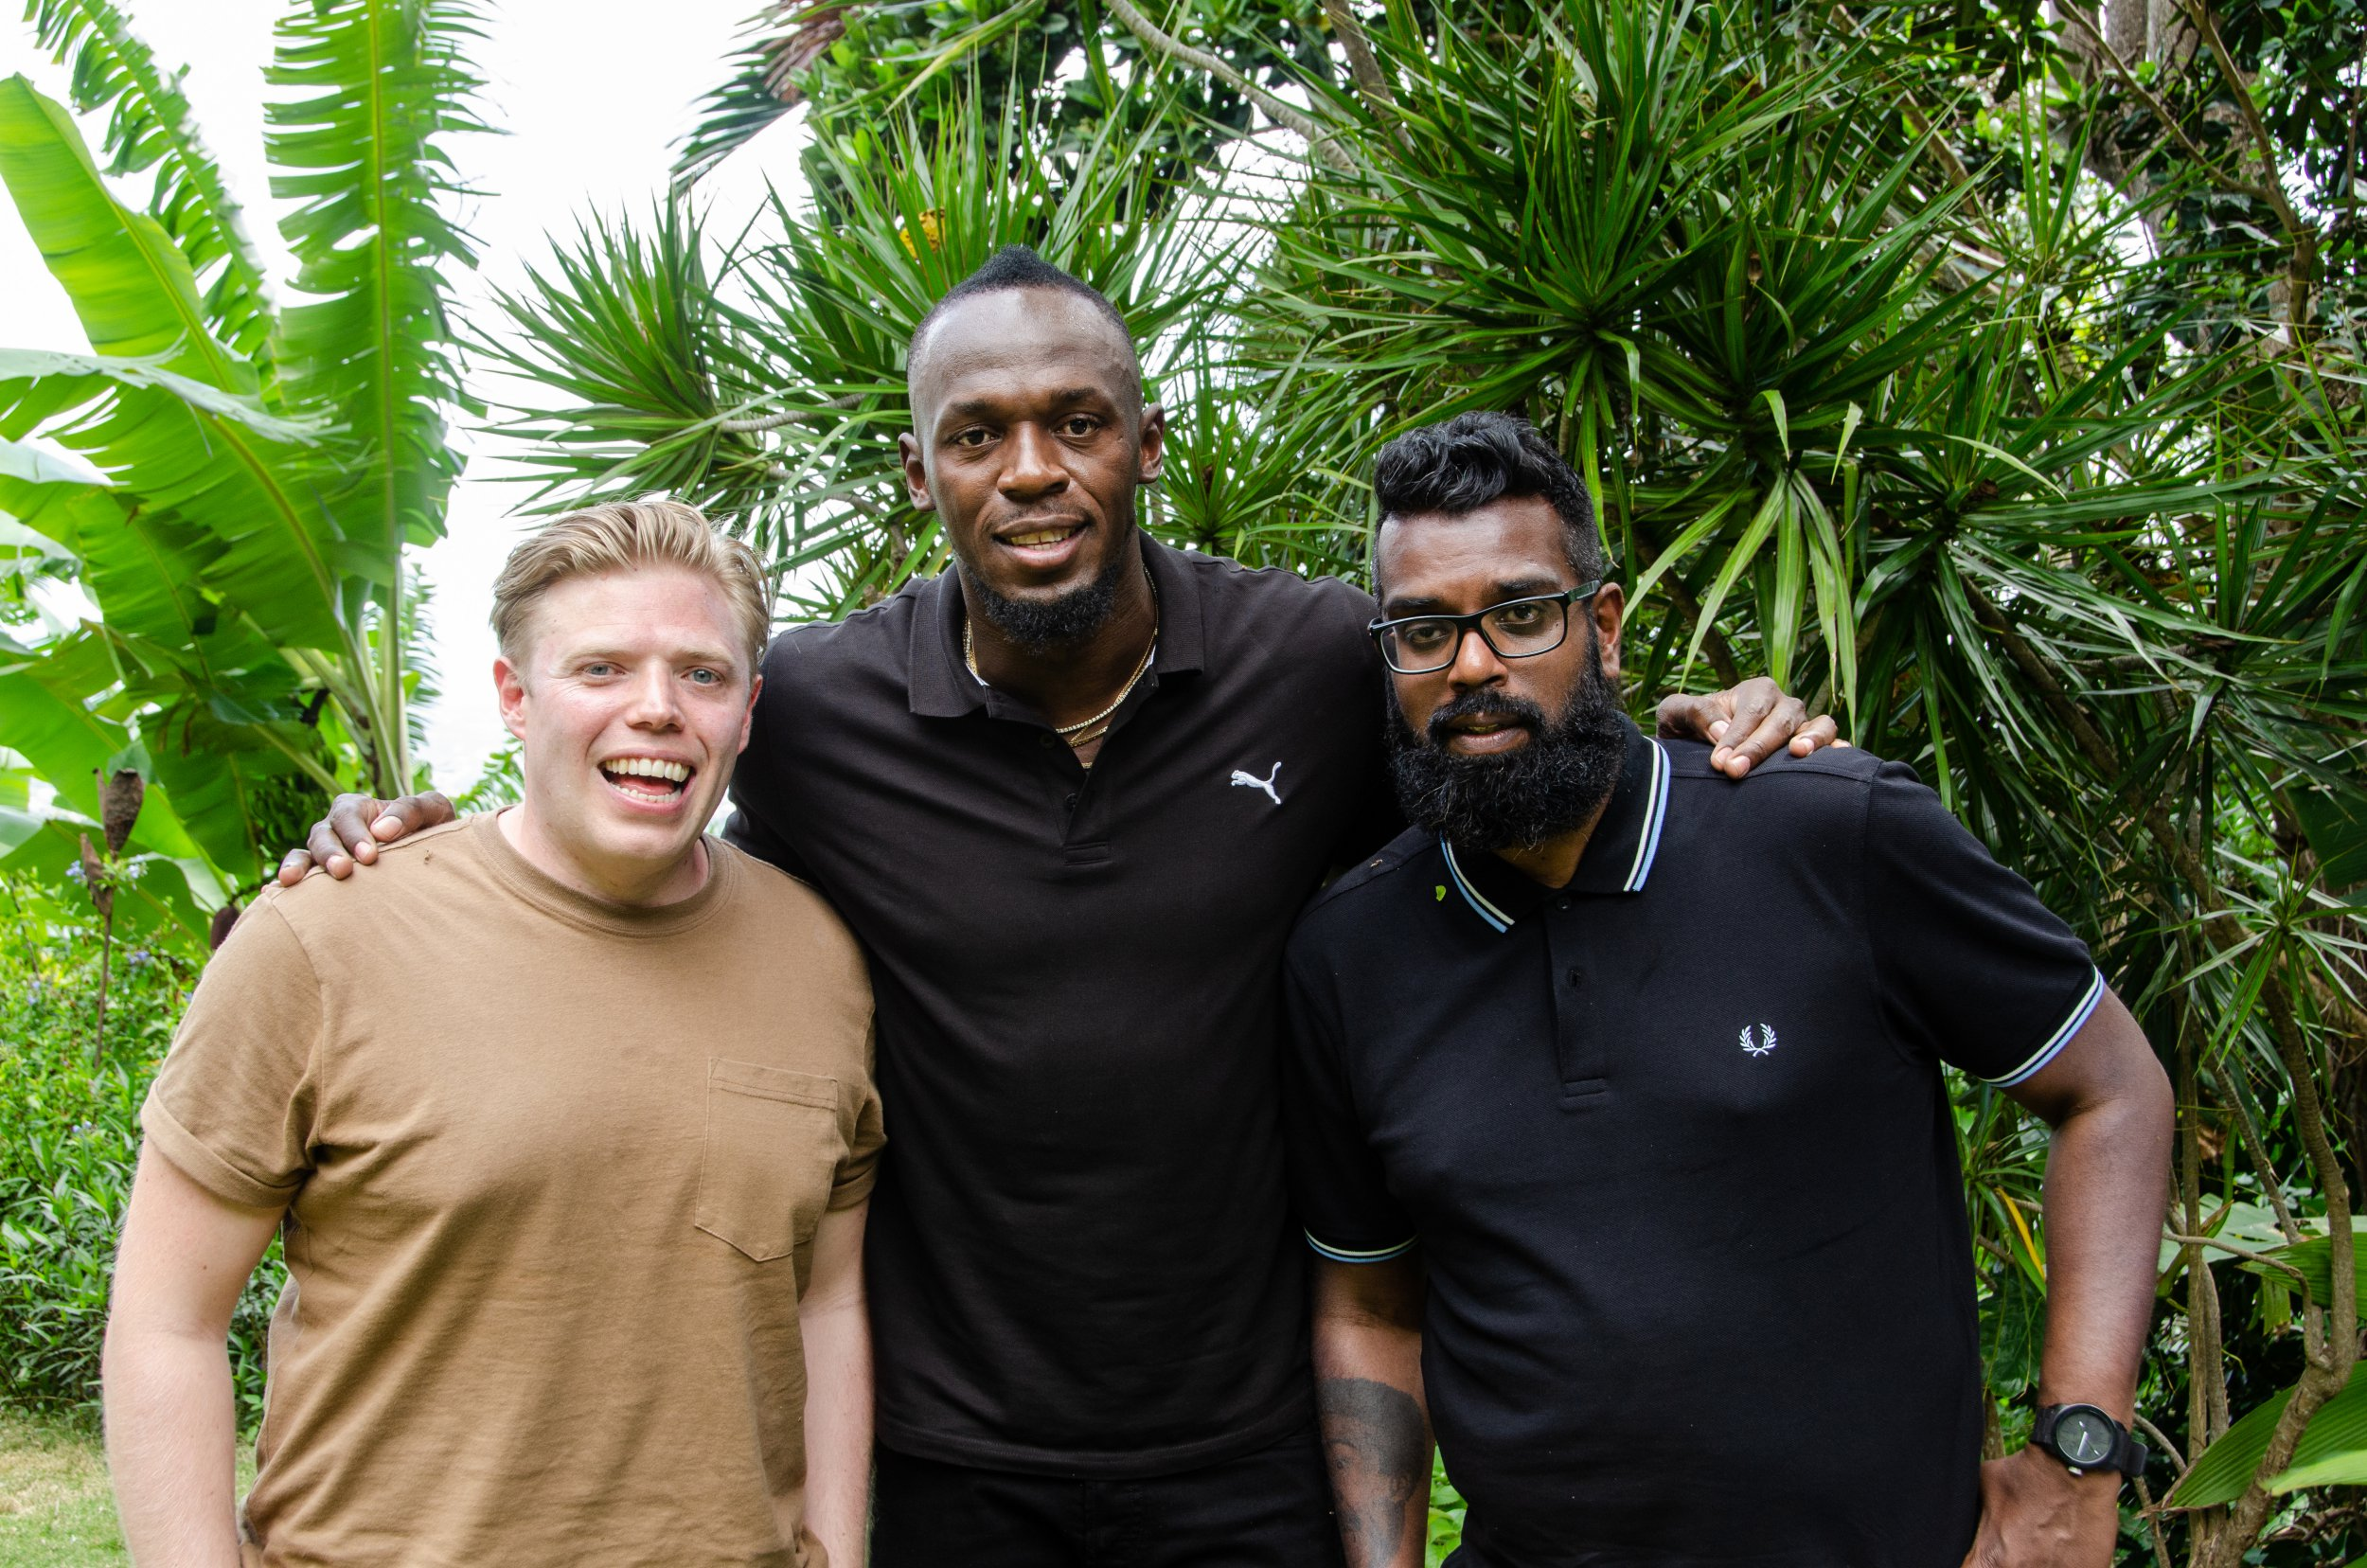 Rob Beckett and Romesh Ranganathan with Usain Bolt After their hilarious encounter with boxing champion Anthony Joshua, comedy A-listers, Rob Beckett and Romesh Ranganathan, are on a brand new mission - to meet their wish list of all-time greats from the worlds of sport and entertainment.